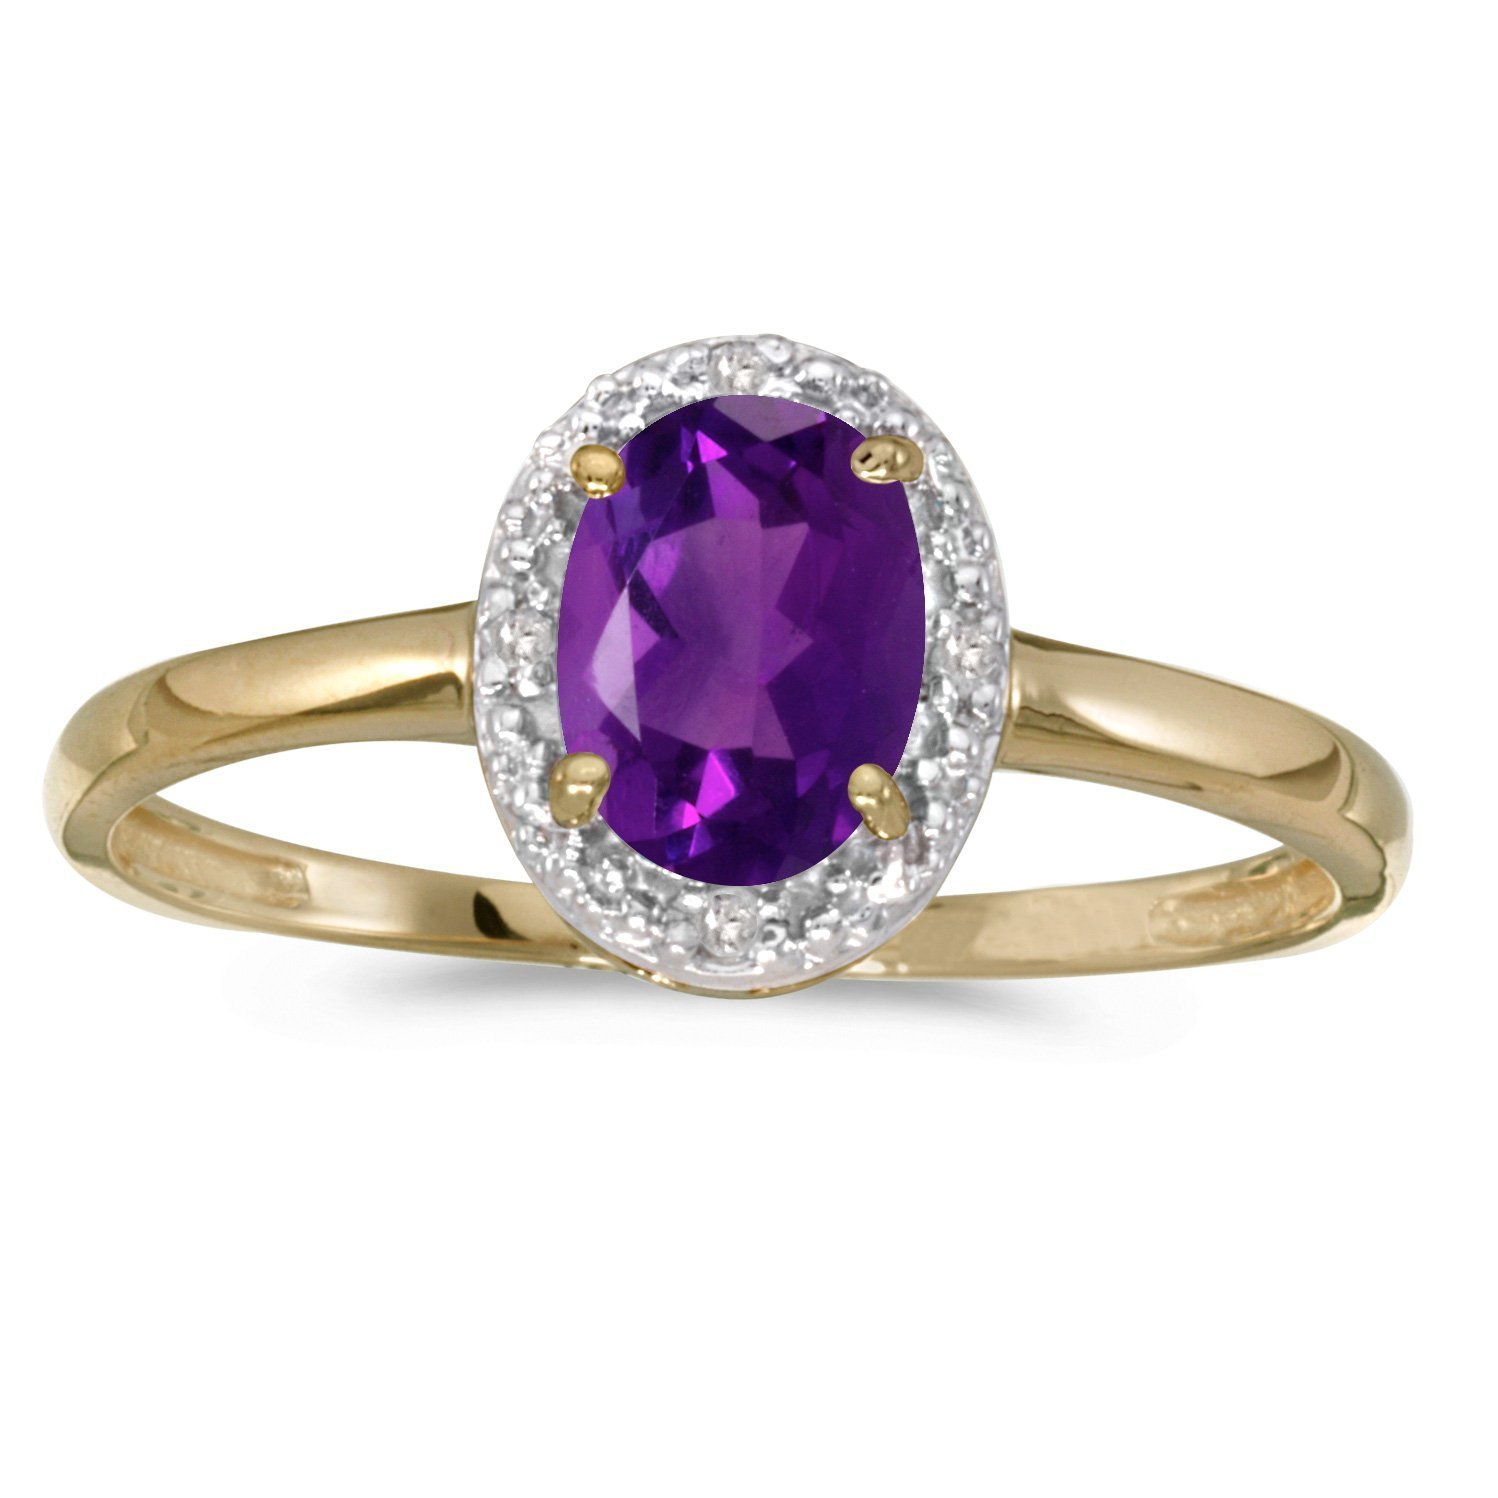 FB Jewels 10k Yellow Gold Genuine Purple Birthstone Solitaire Oval Amethyst And Diamond Wedding Engagement Statement Ring - Size 10 (0.45 Cttw.)